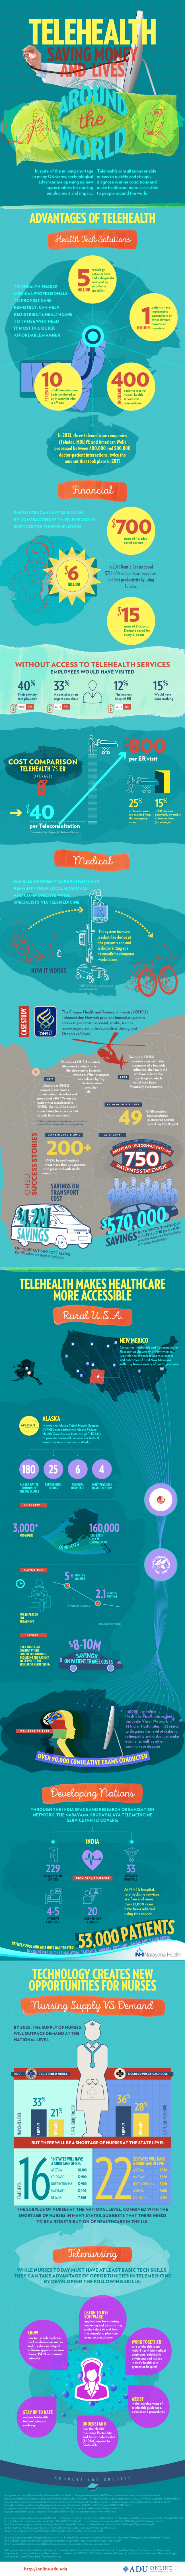 Telehealth Saving Money And Lives Around The World